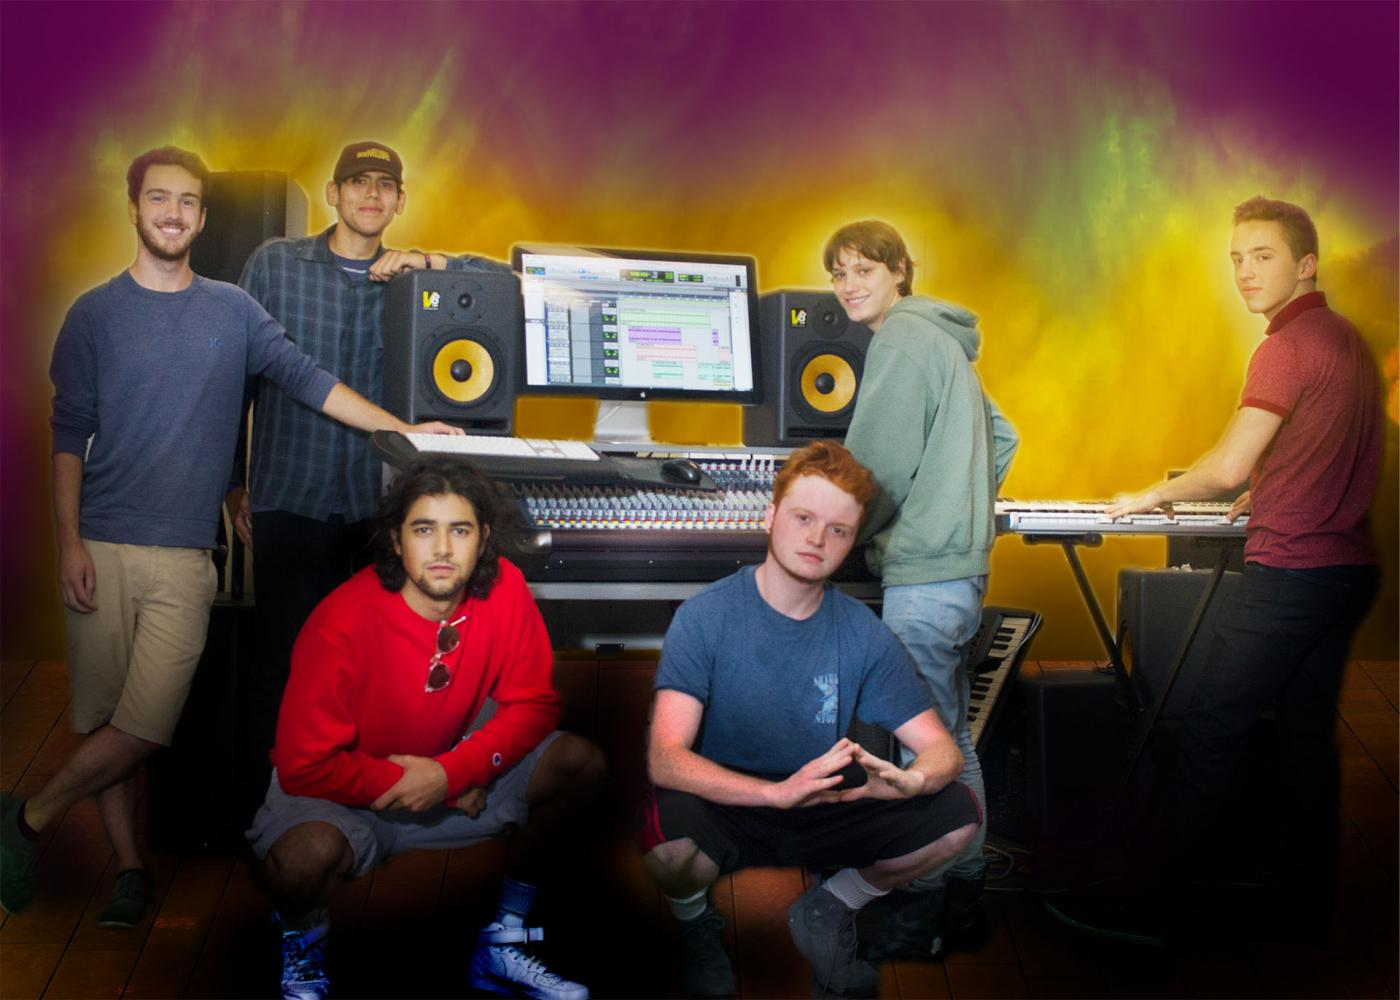 Students pose with music equipment Wednesday Sept. 20, which they learn to use in James Watson's electronic music recording class at City College. The goal of this class is to get students comfortable with the equipment and prepare them to get a job in the music industry.